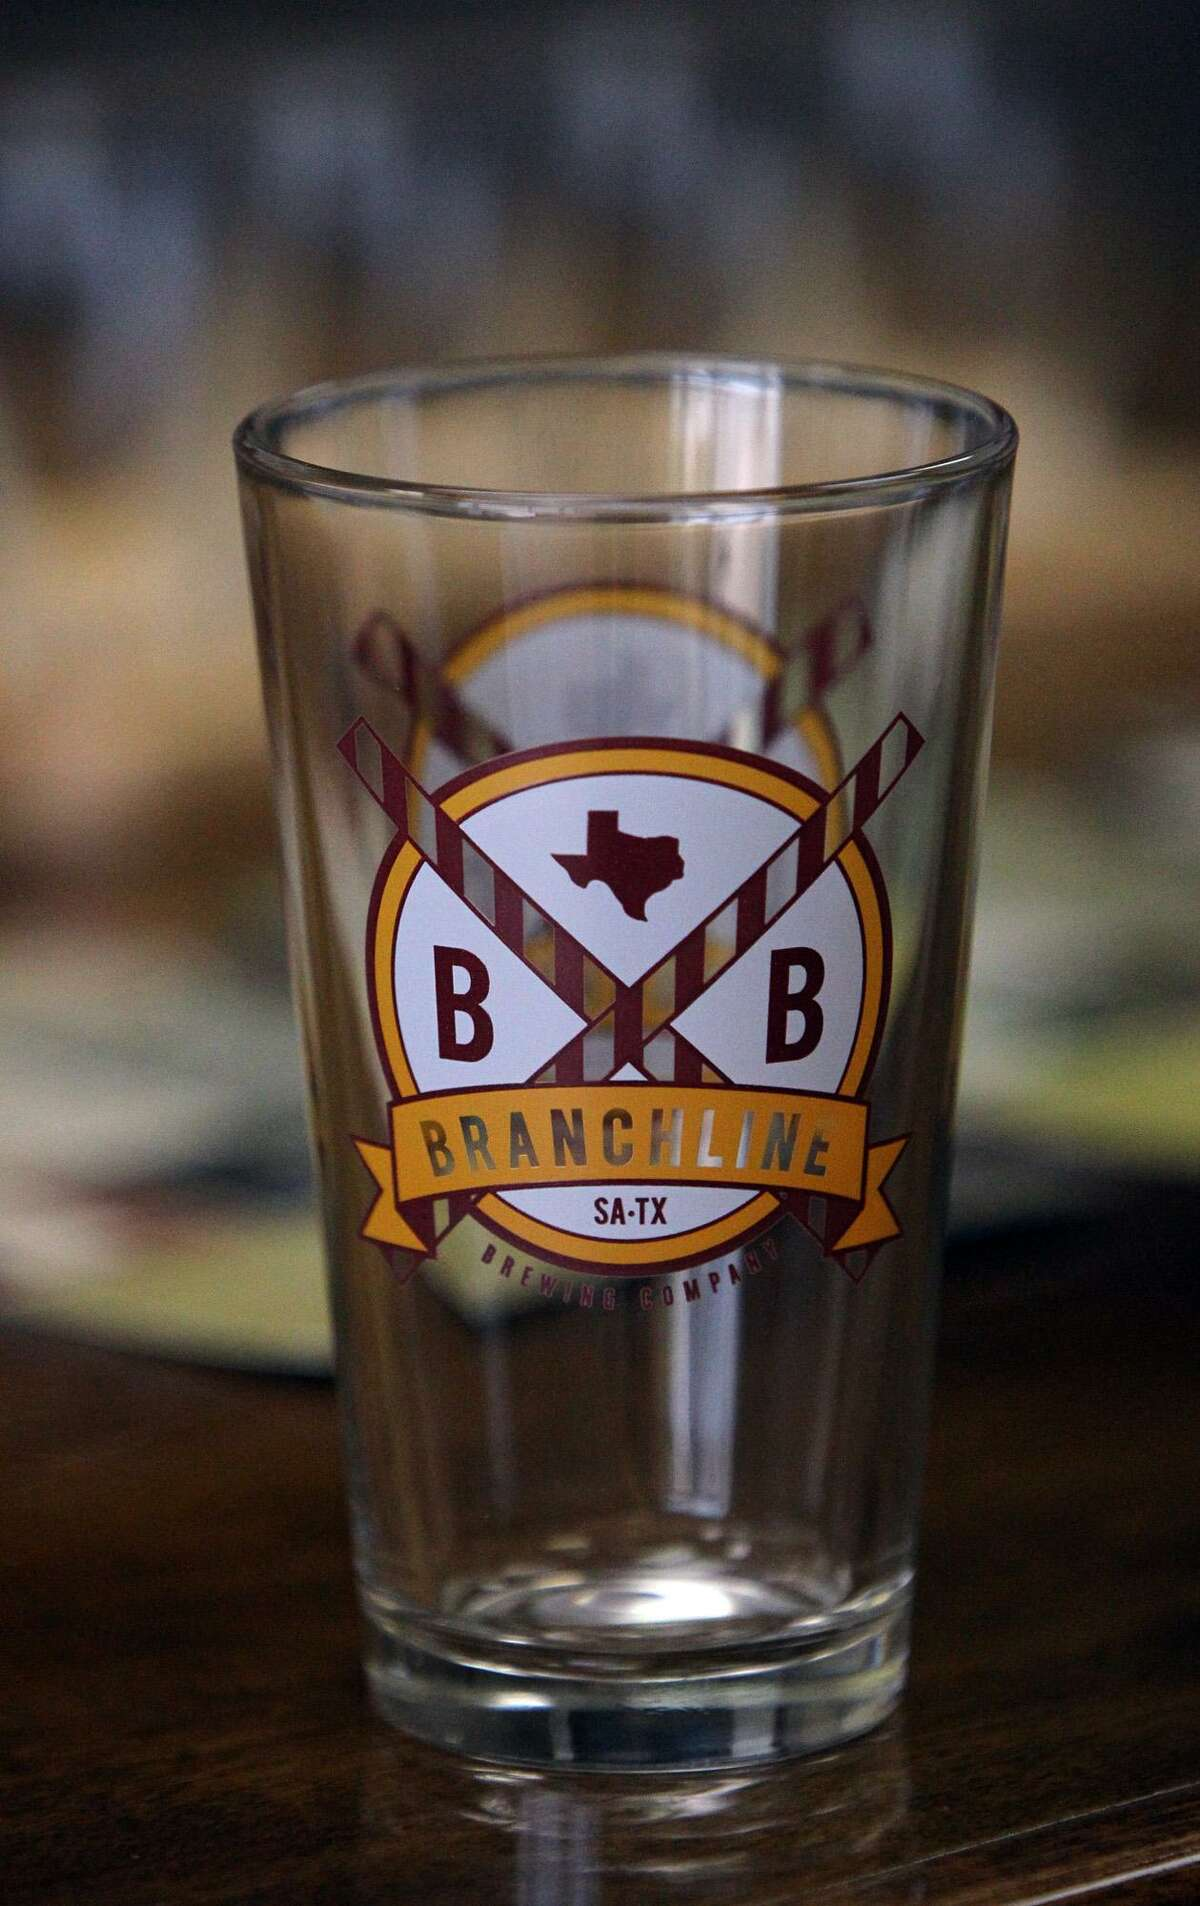 A souvenier glass from The Branchline Brewing Company